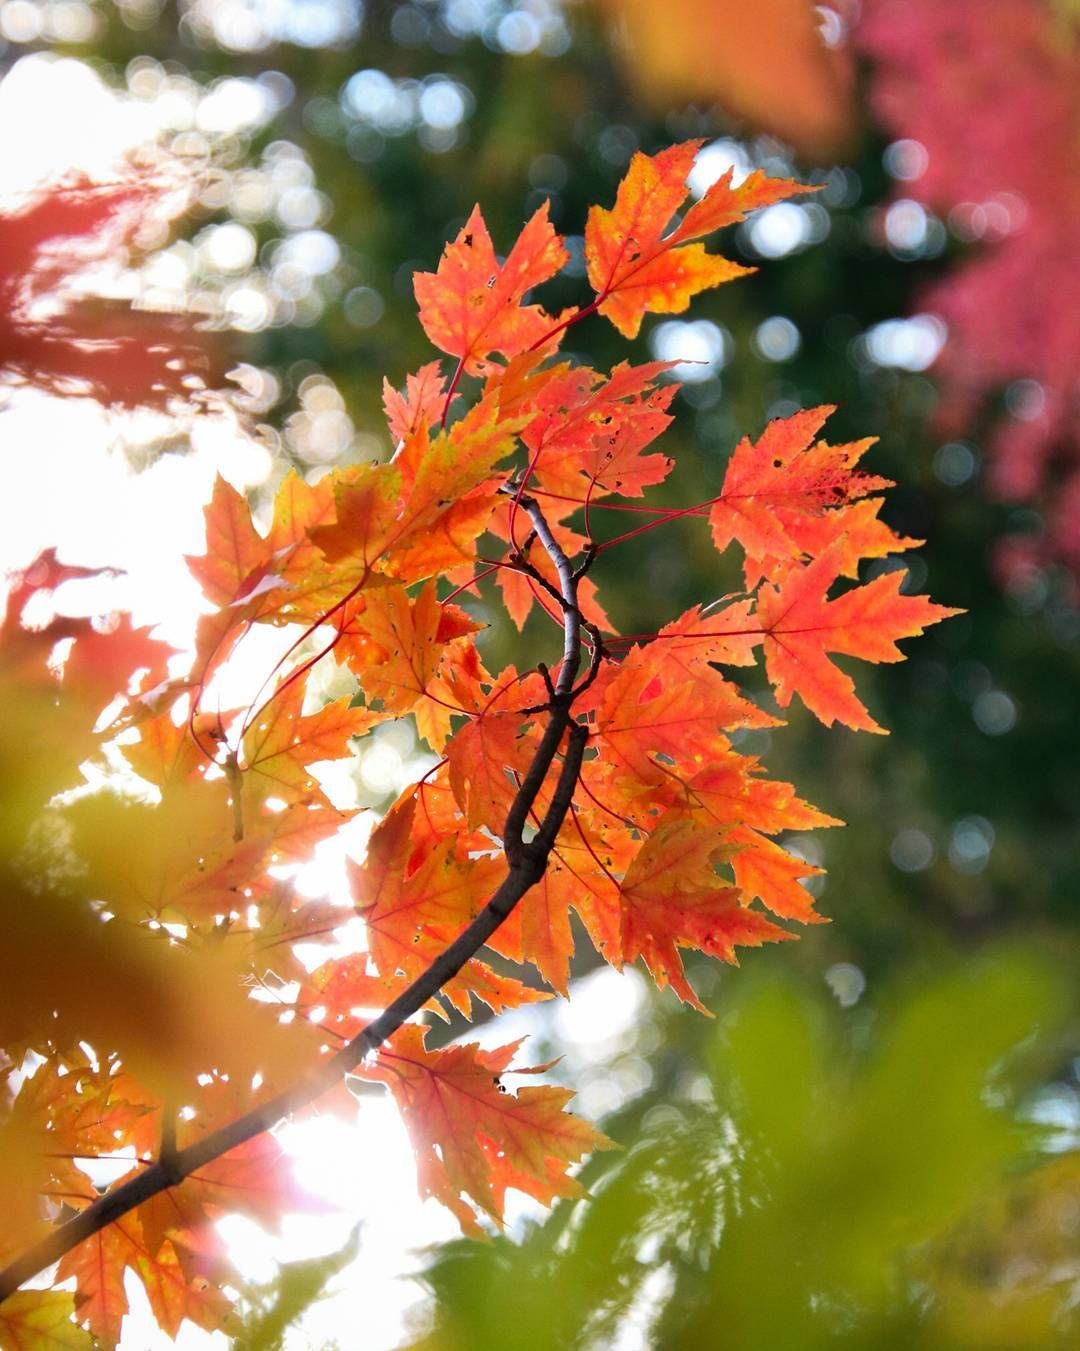 Fall In Love With These Colours Fall Autumn Leaf Leaves Maple Tree Canada Orange Red Green Yellow Favourite Photo Photog Photo Pics Photography